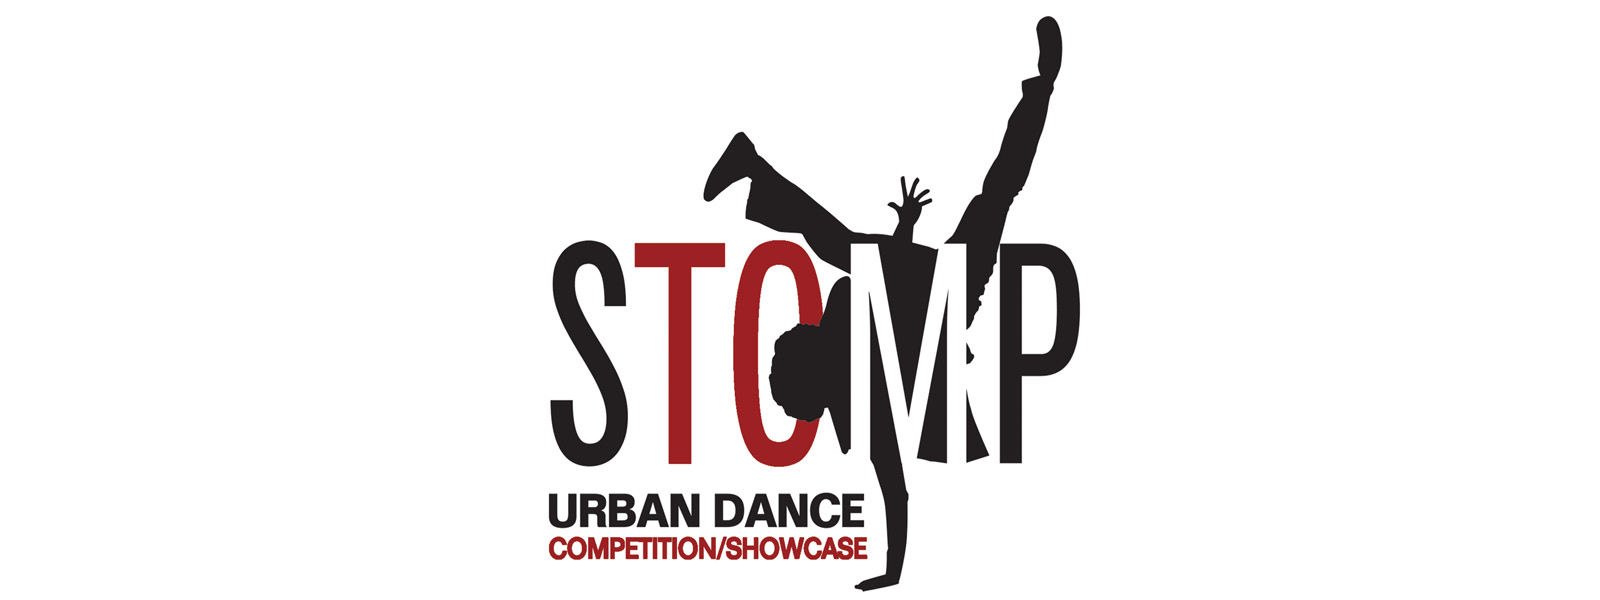 May 7: StompTO Urban Dance Competition/Showcase